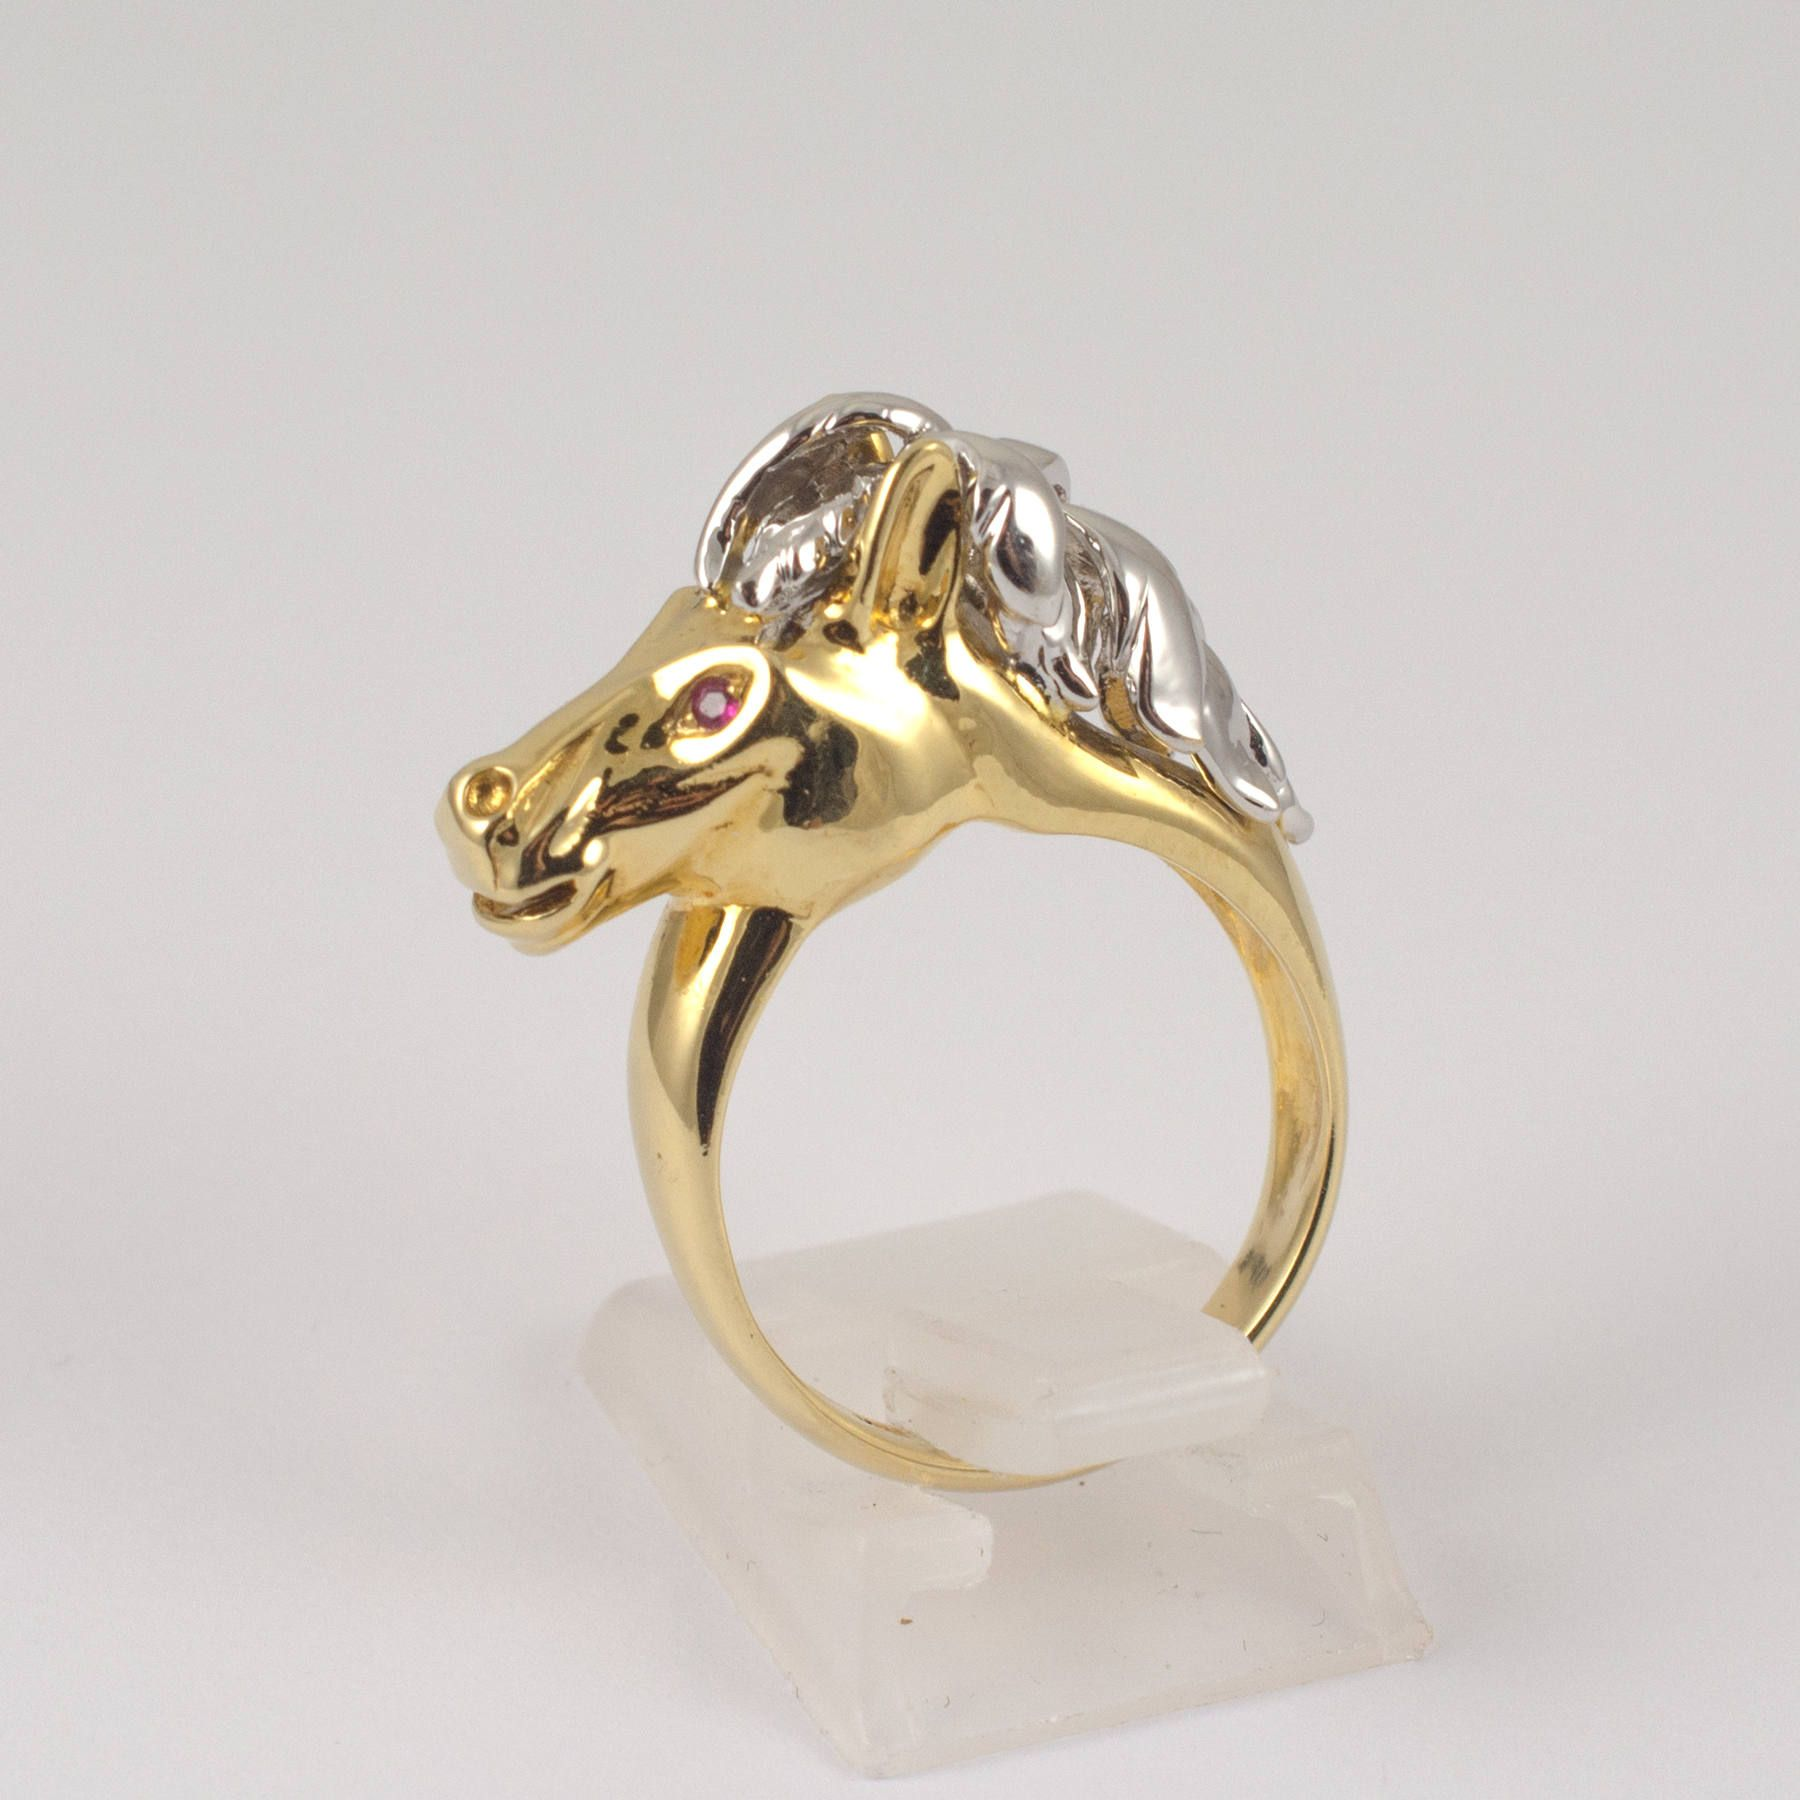 18K Yellow White Gold Horse Ring With Rubies Equestrian Jewelry